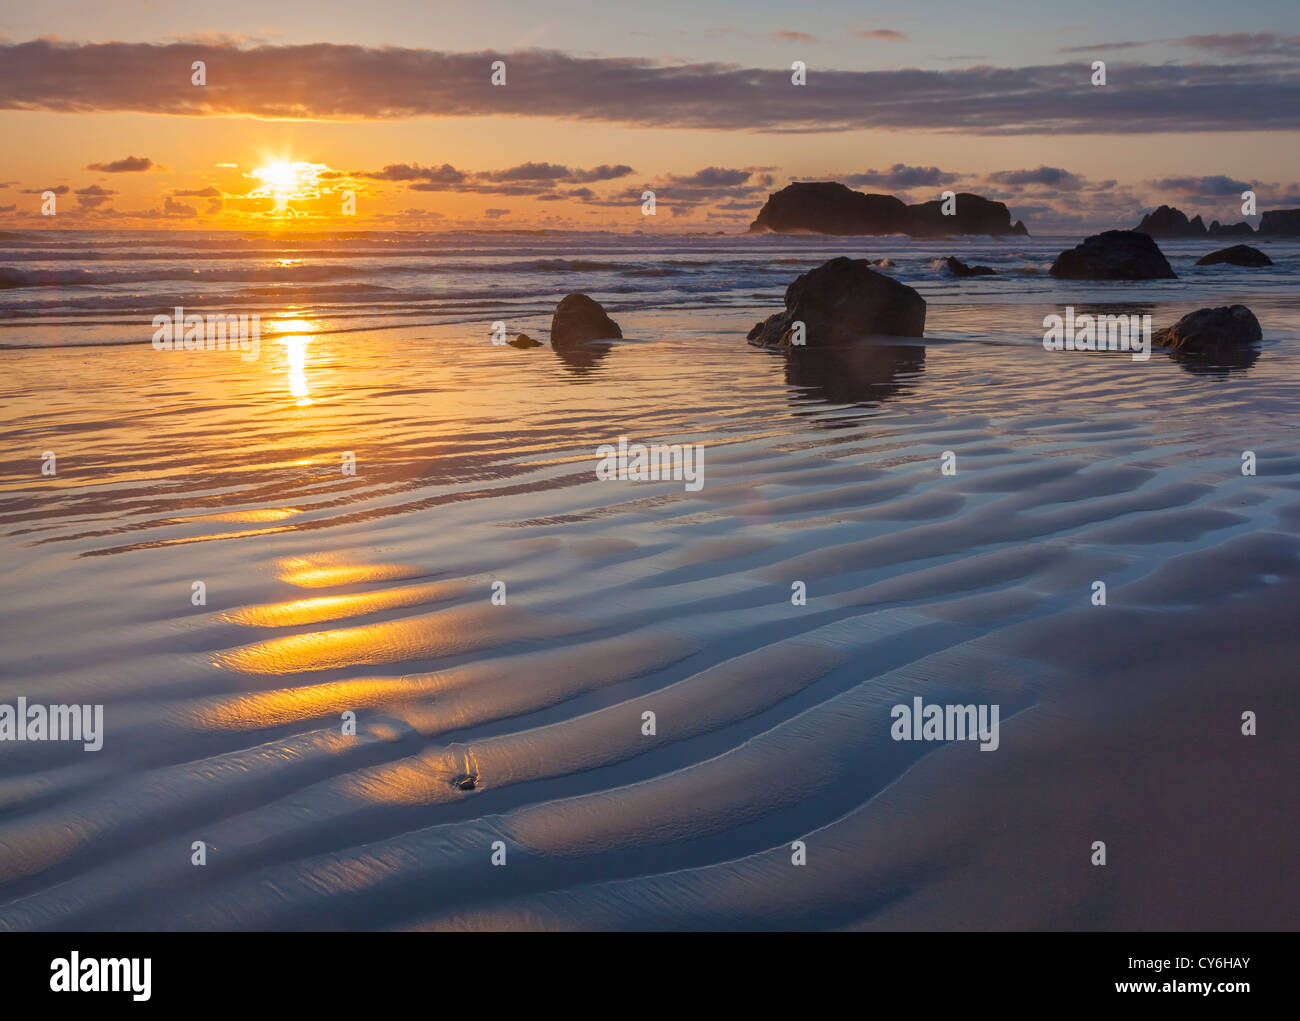 El Parque Estatal de Bandon, Oregon: Sunset reflexiones en la marea baja con siluetas en Bandon seastacks Beach Imagen De Stock